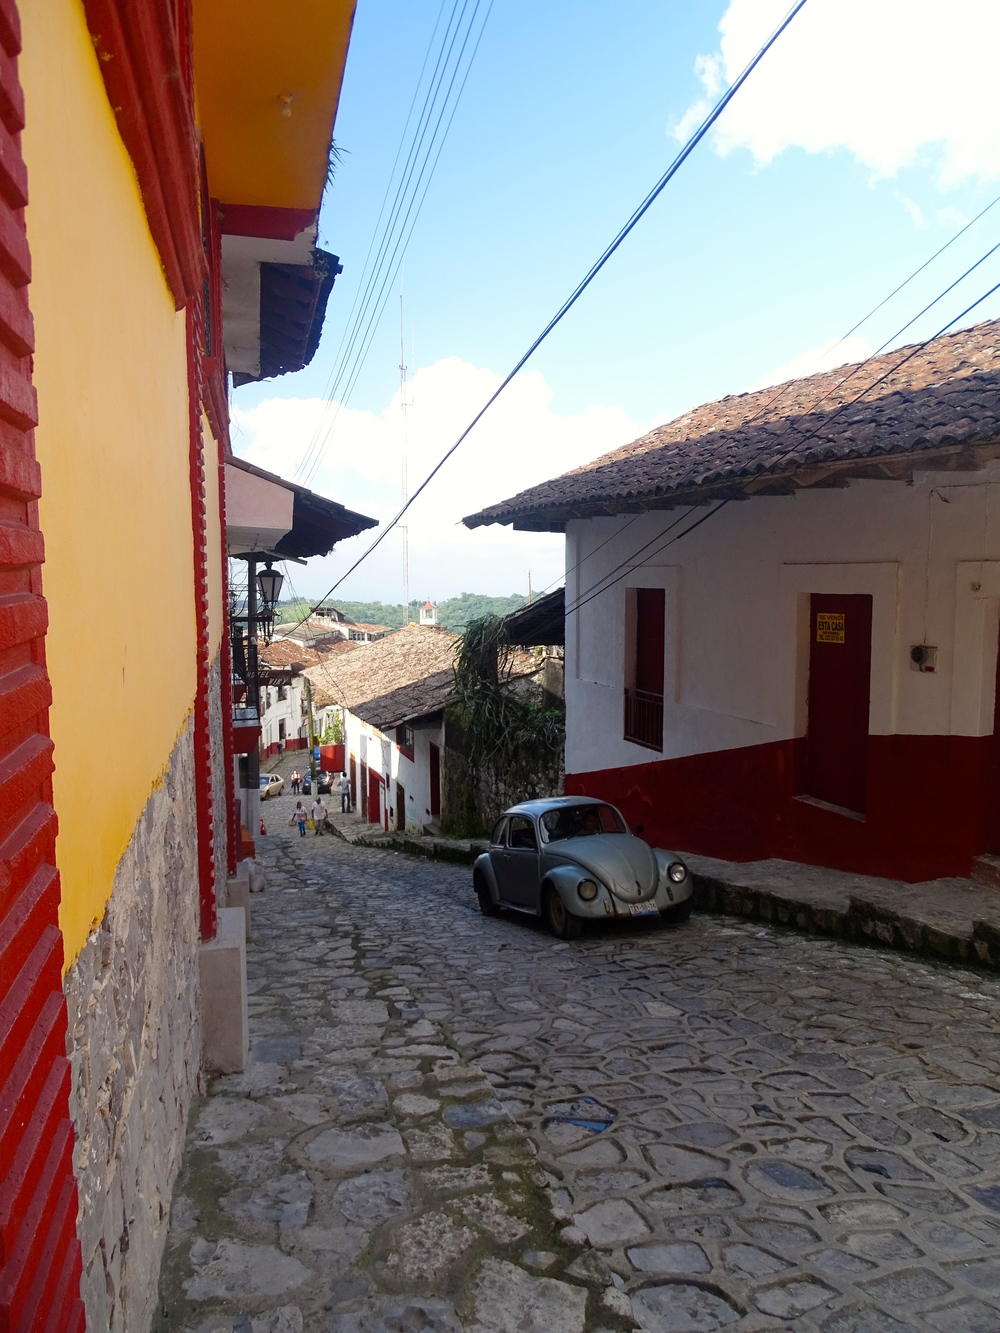 Slick, steep cobblestone streets in Cuetzatlan.